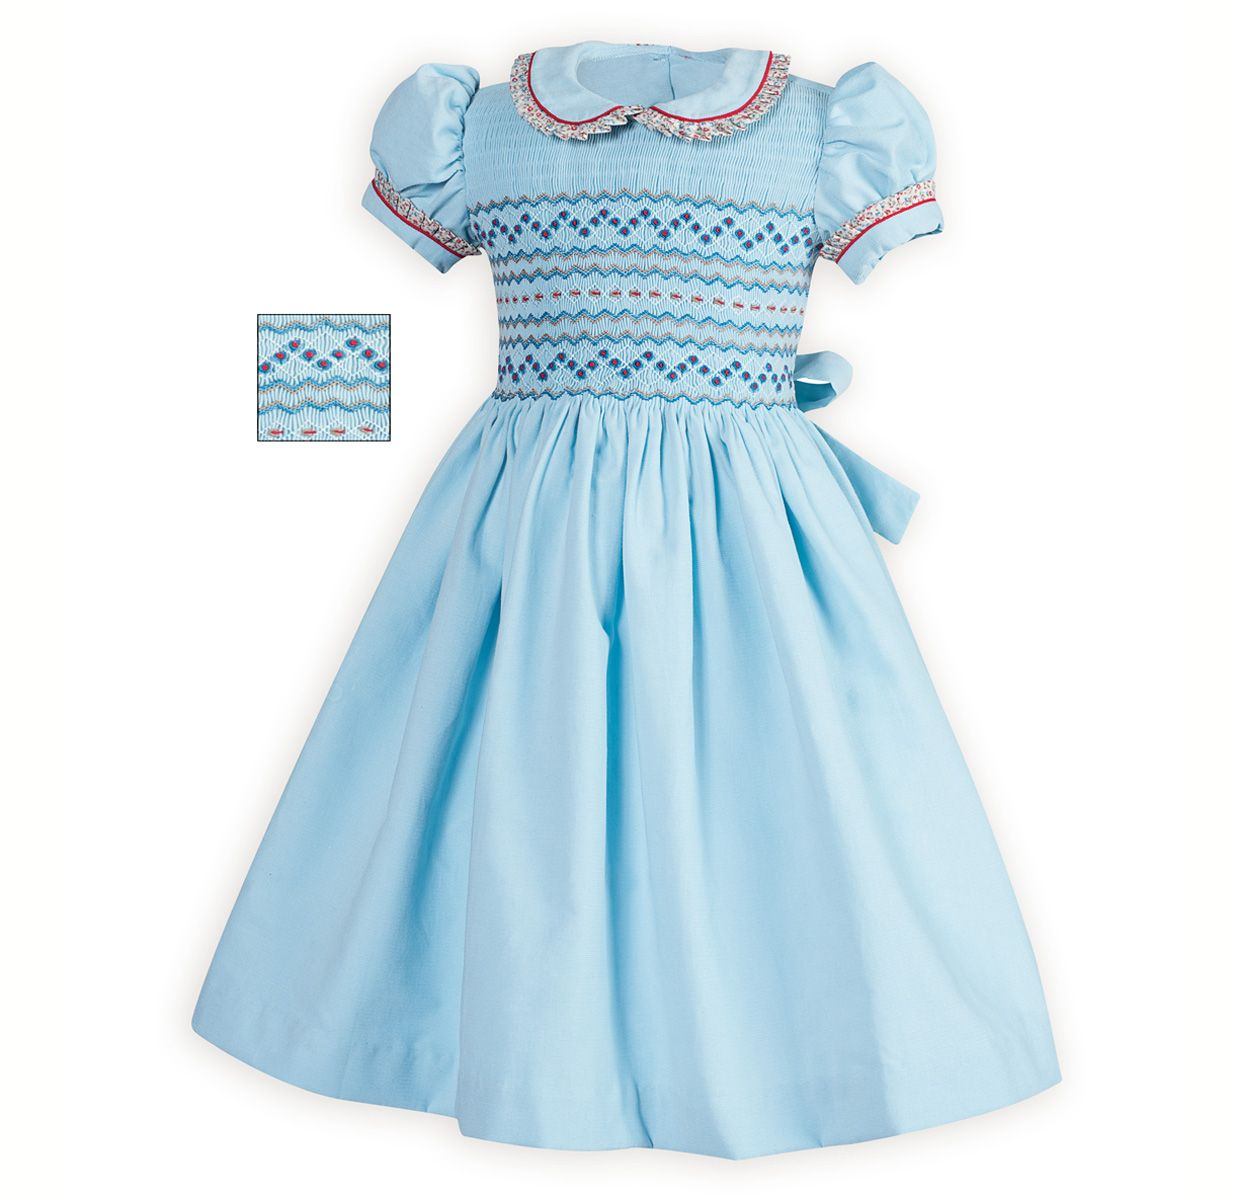 Traditional Toddler Girls Smocked Dress | Sugar & Spice ...